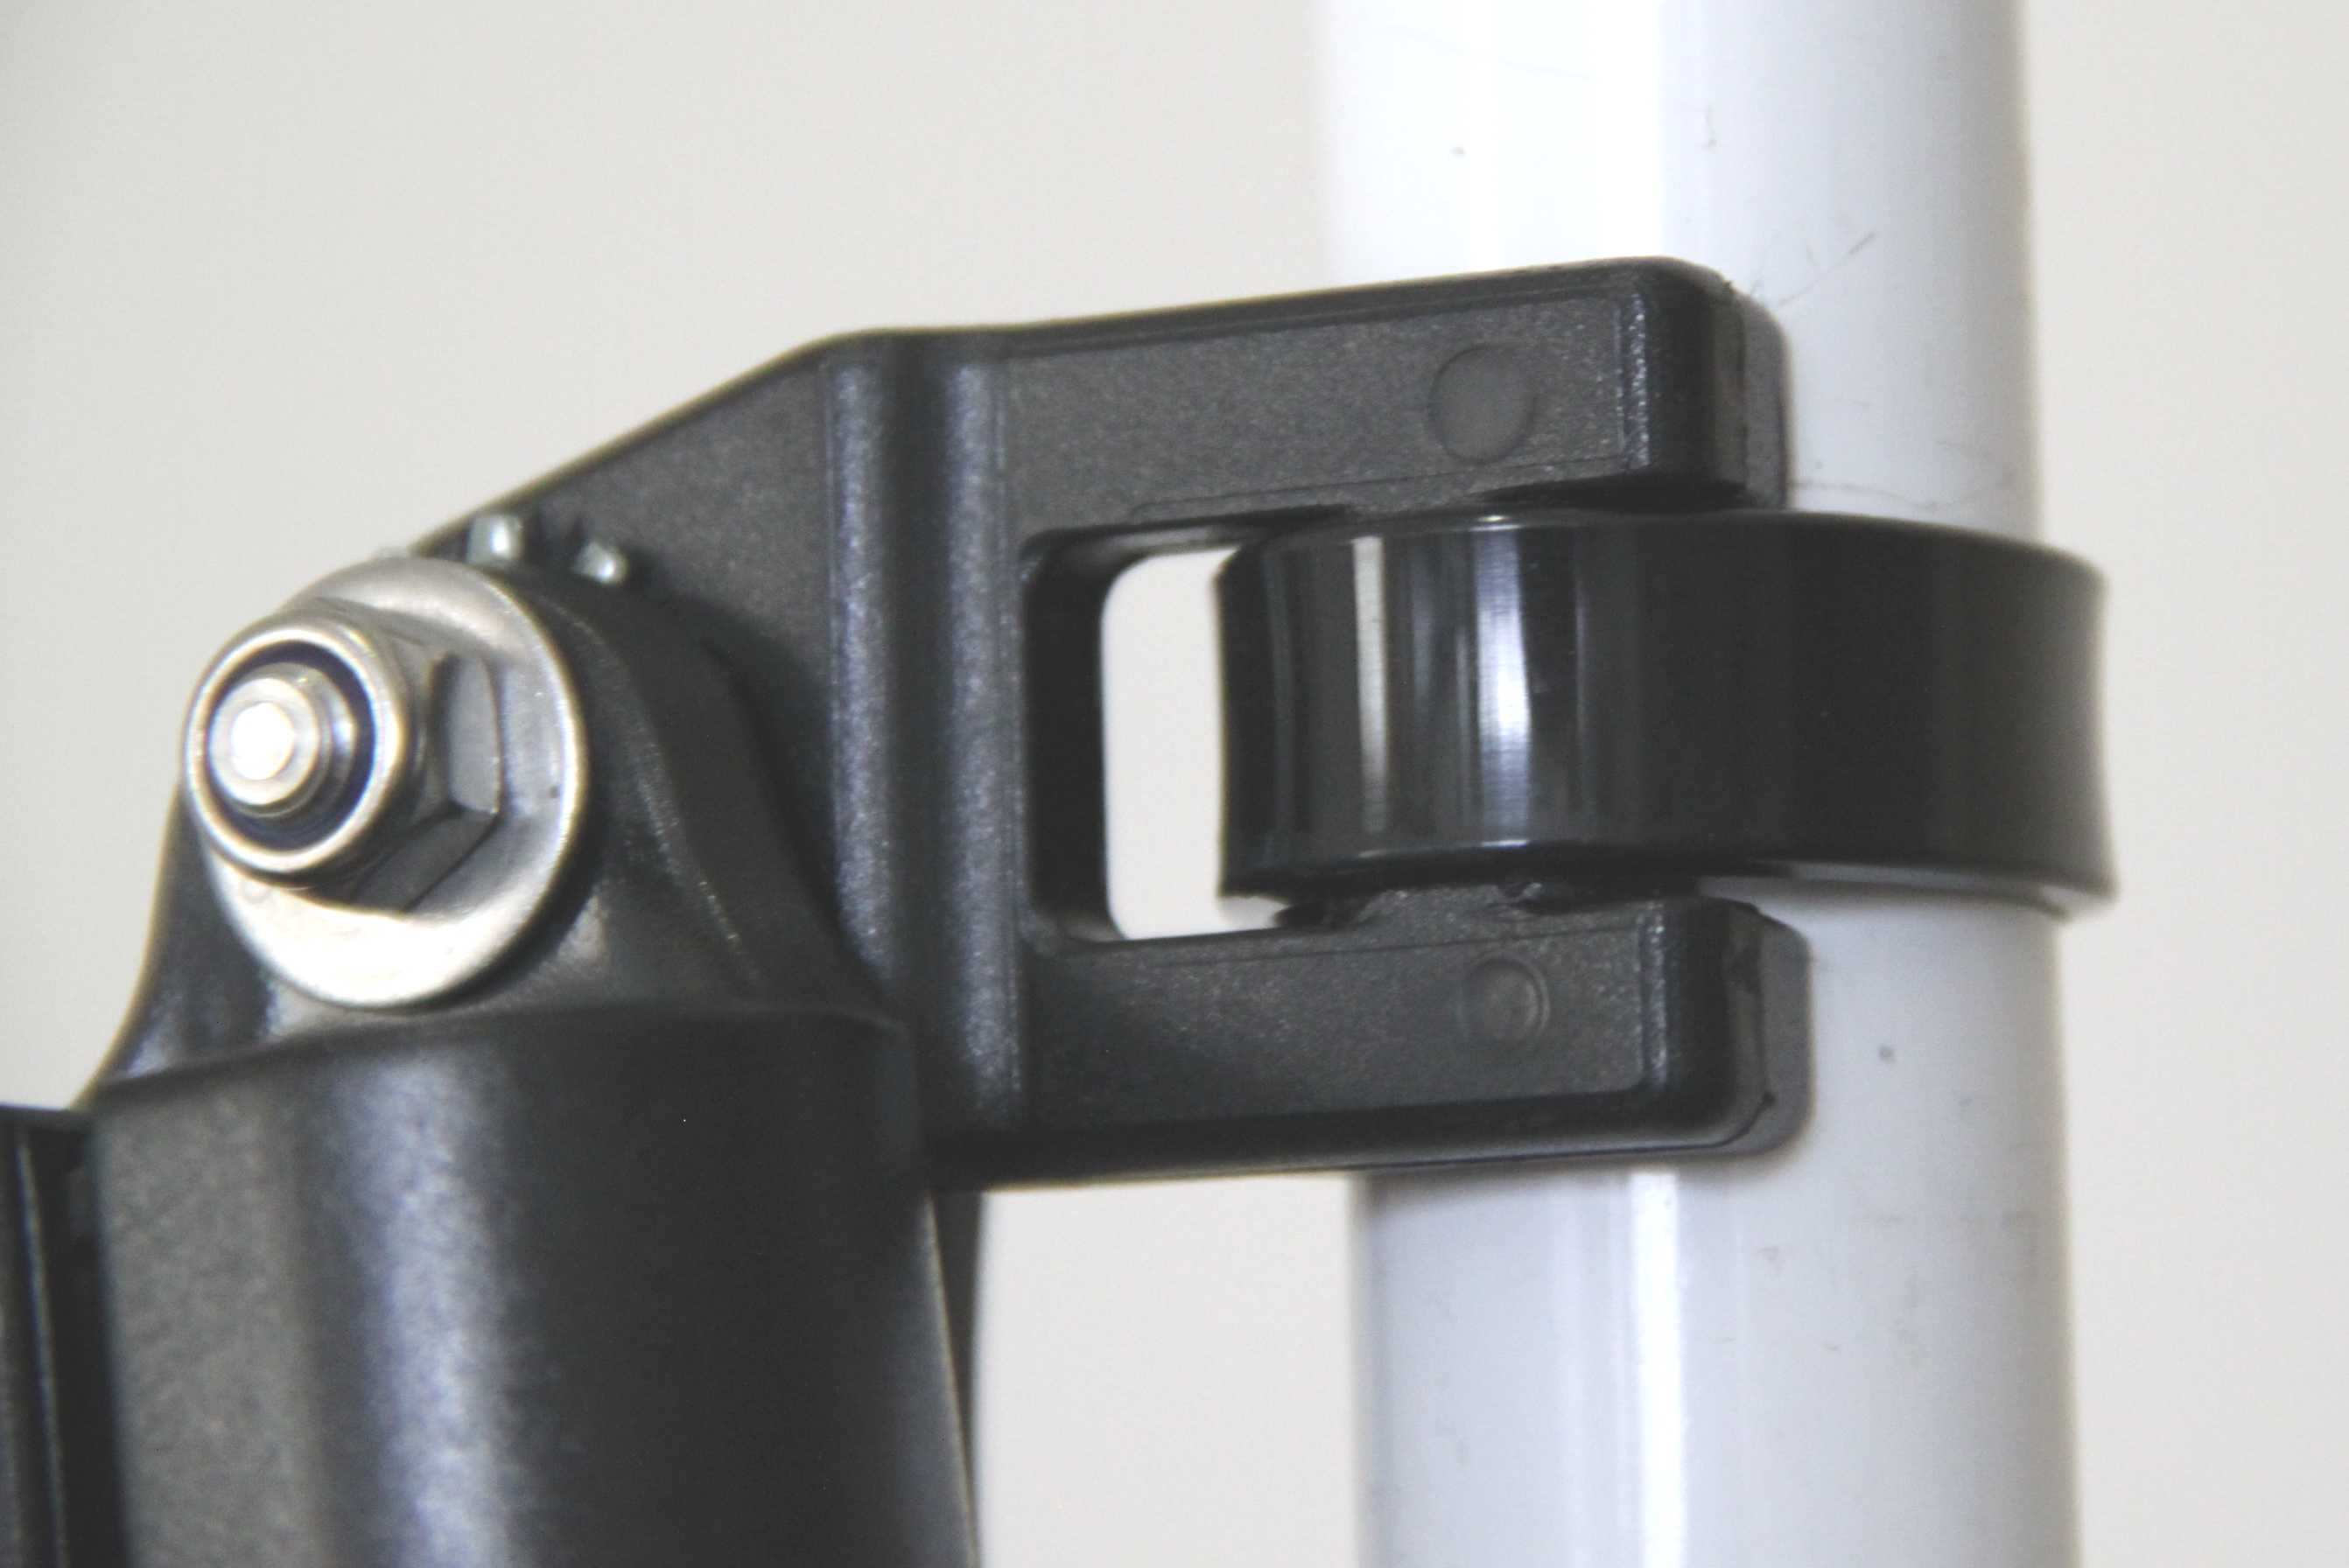 Holder attached with 12.6mm wide cable tie